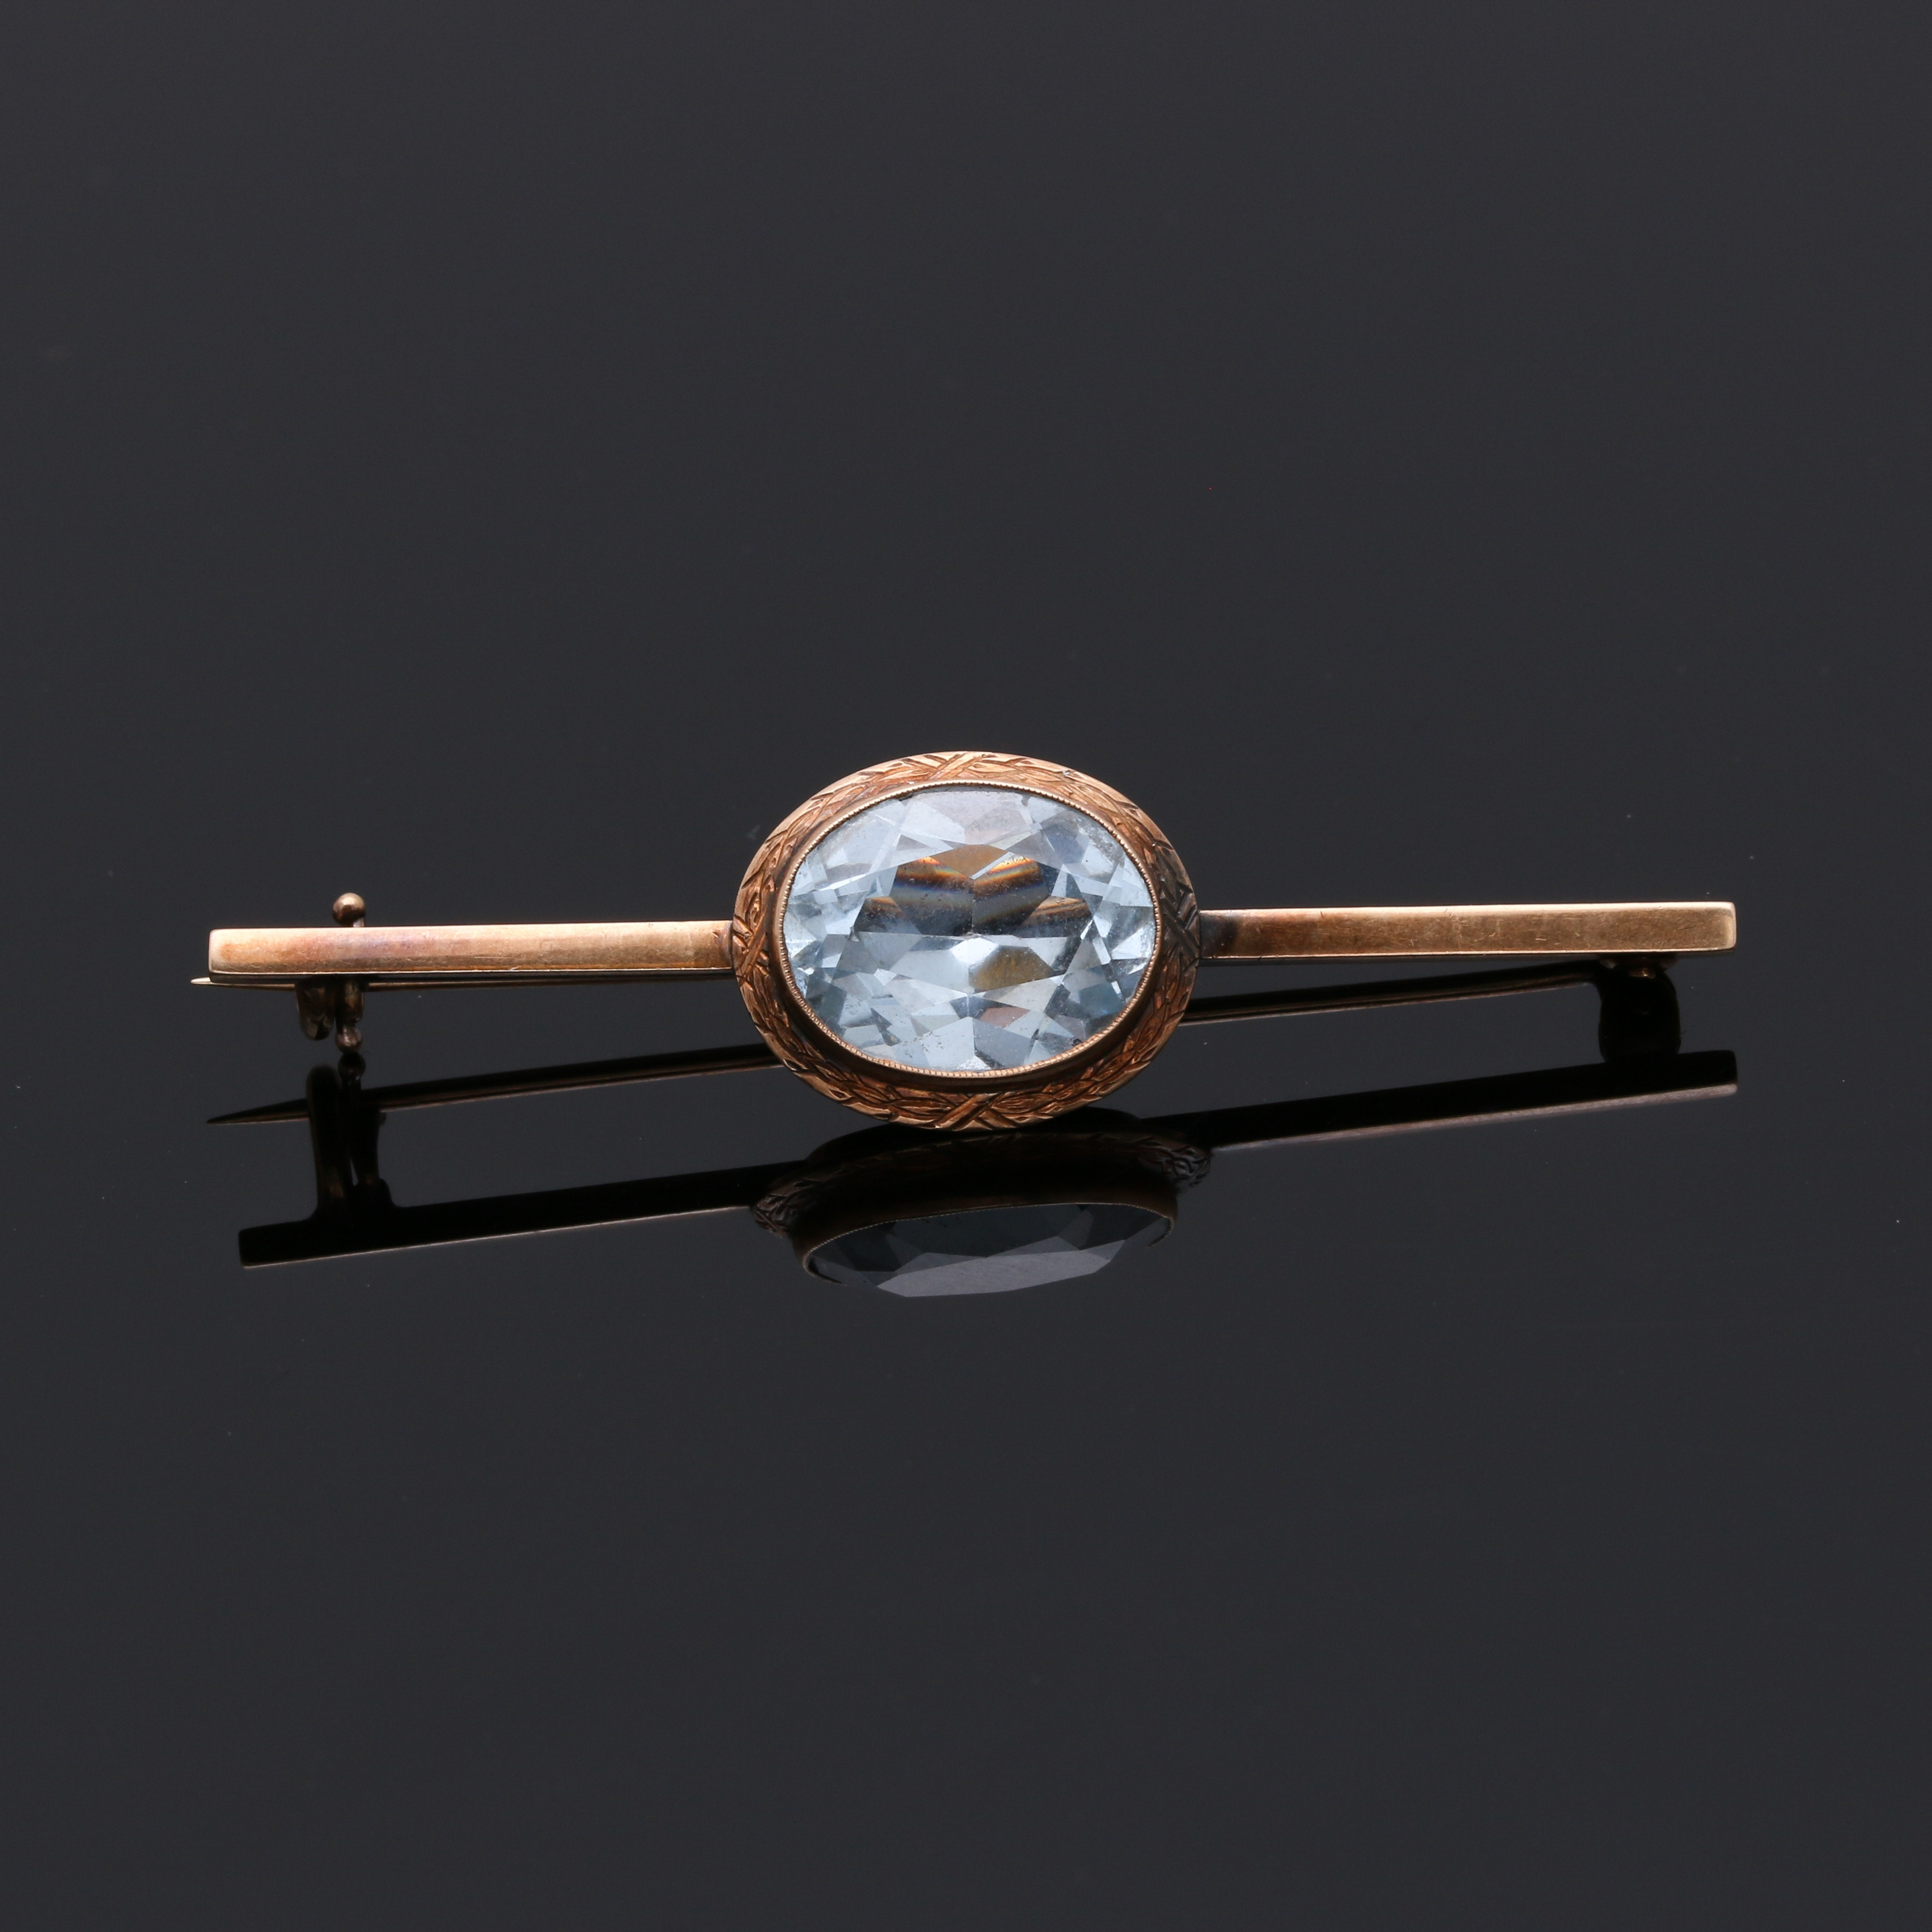 Vintage 14K Yellow Gold Spinel Brooch